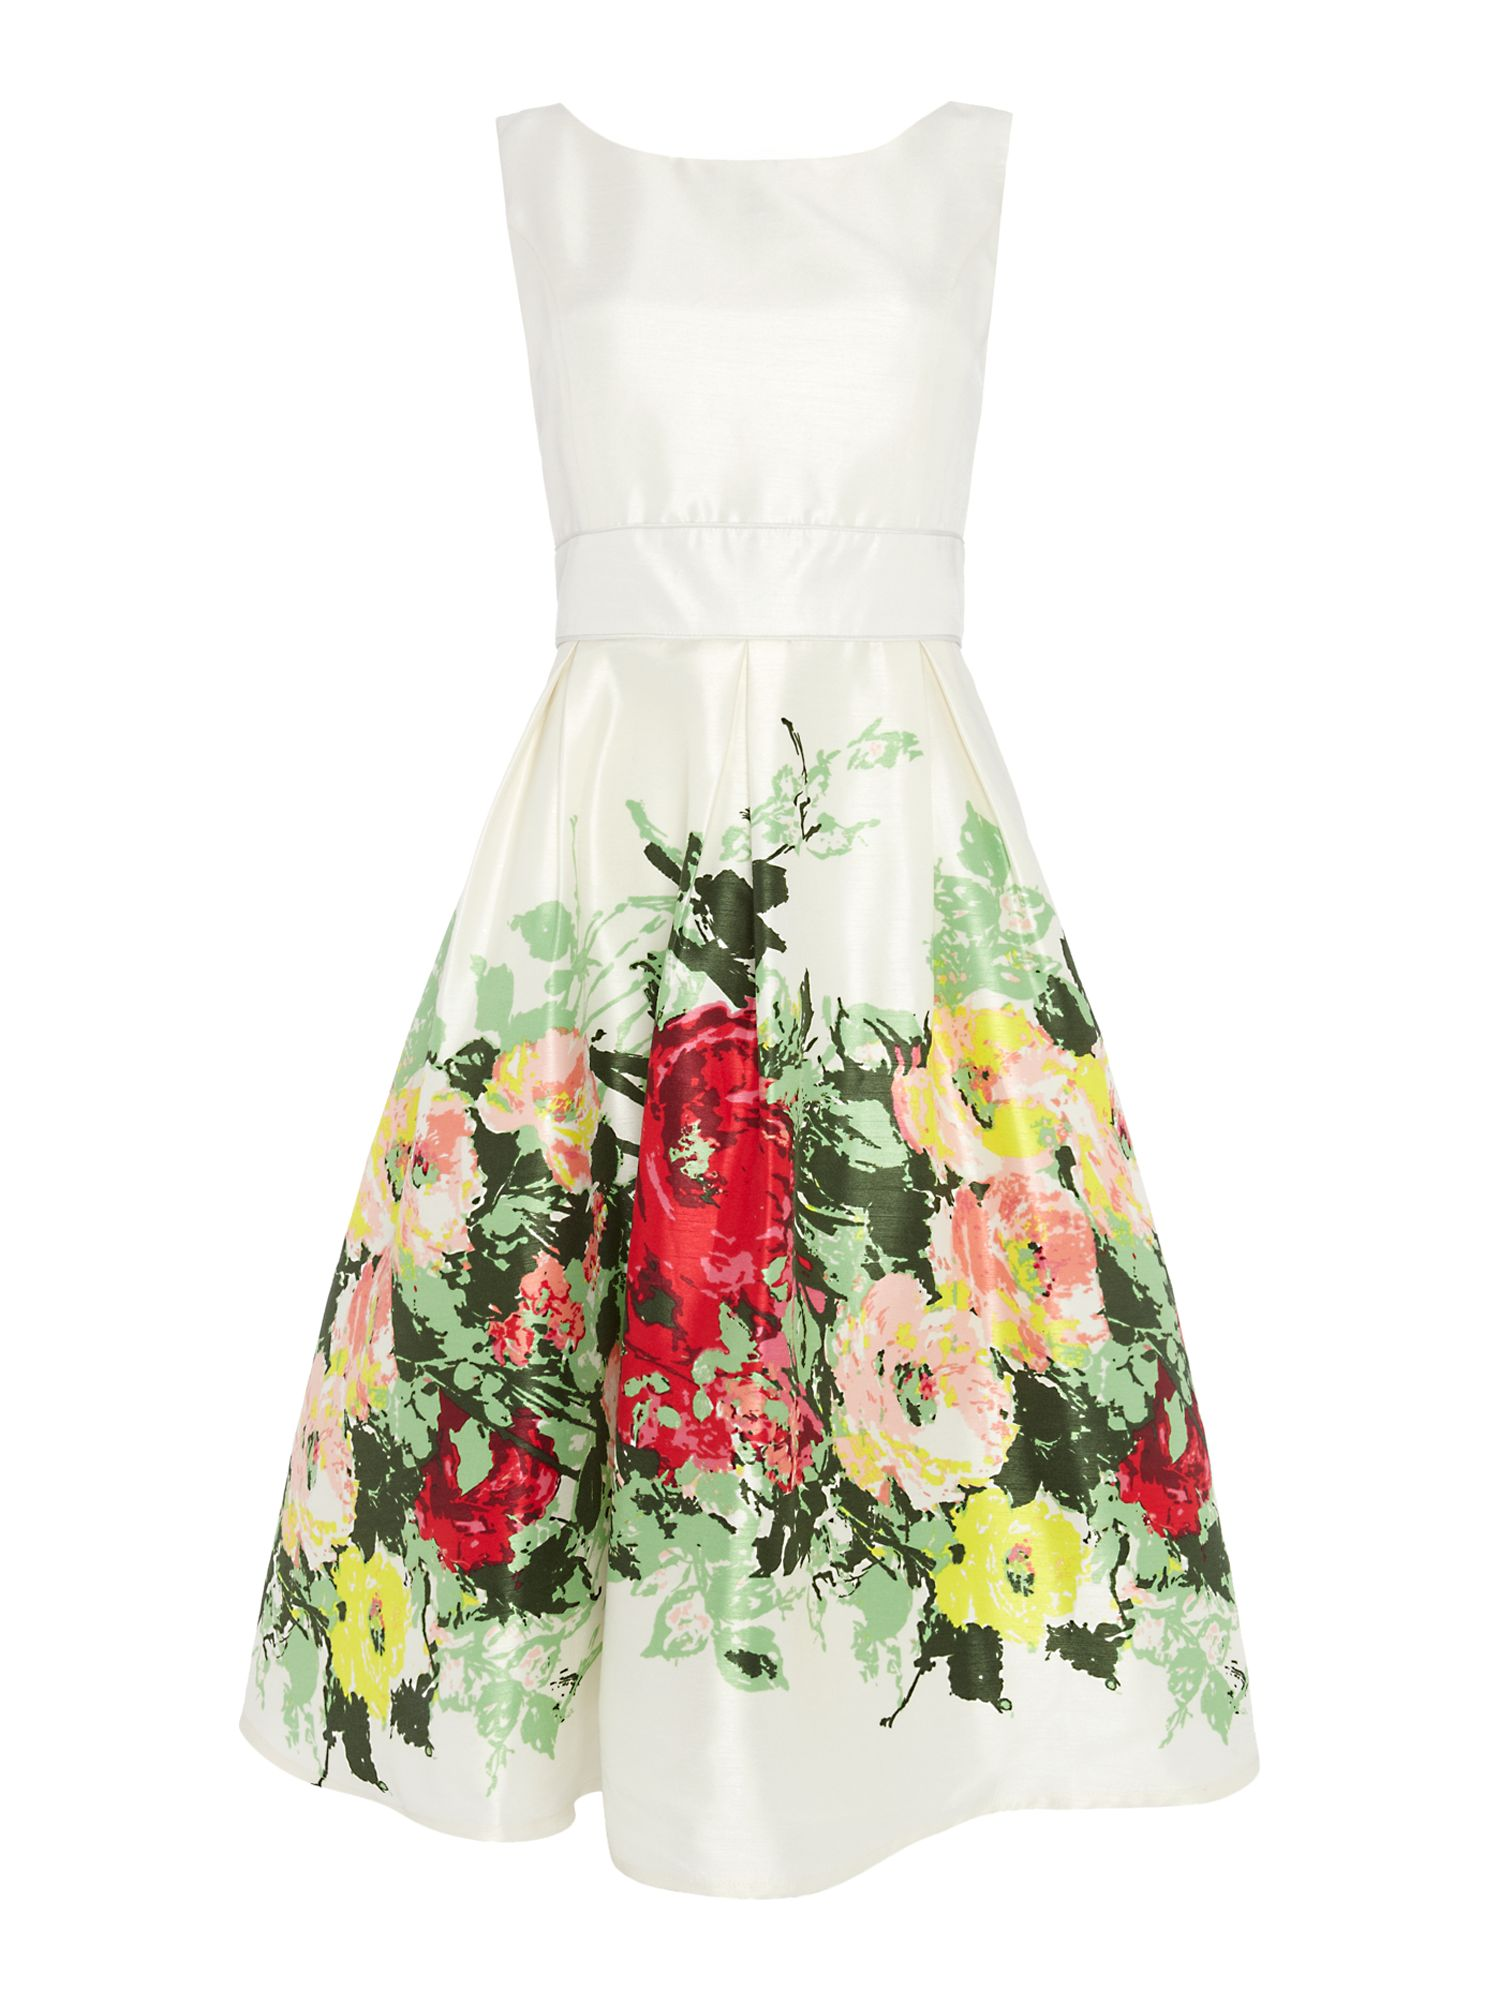 Country garden vintage dress